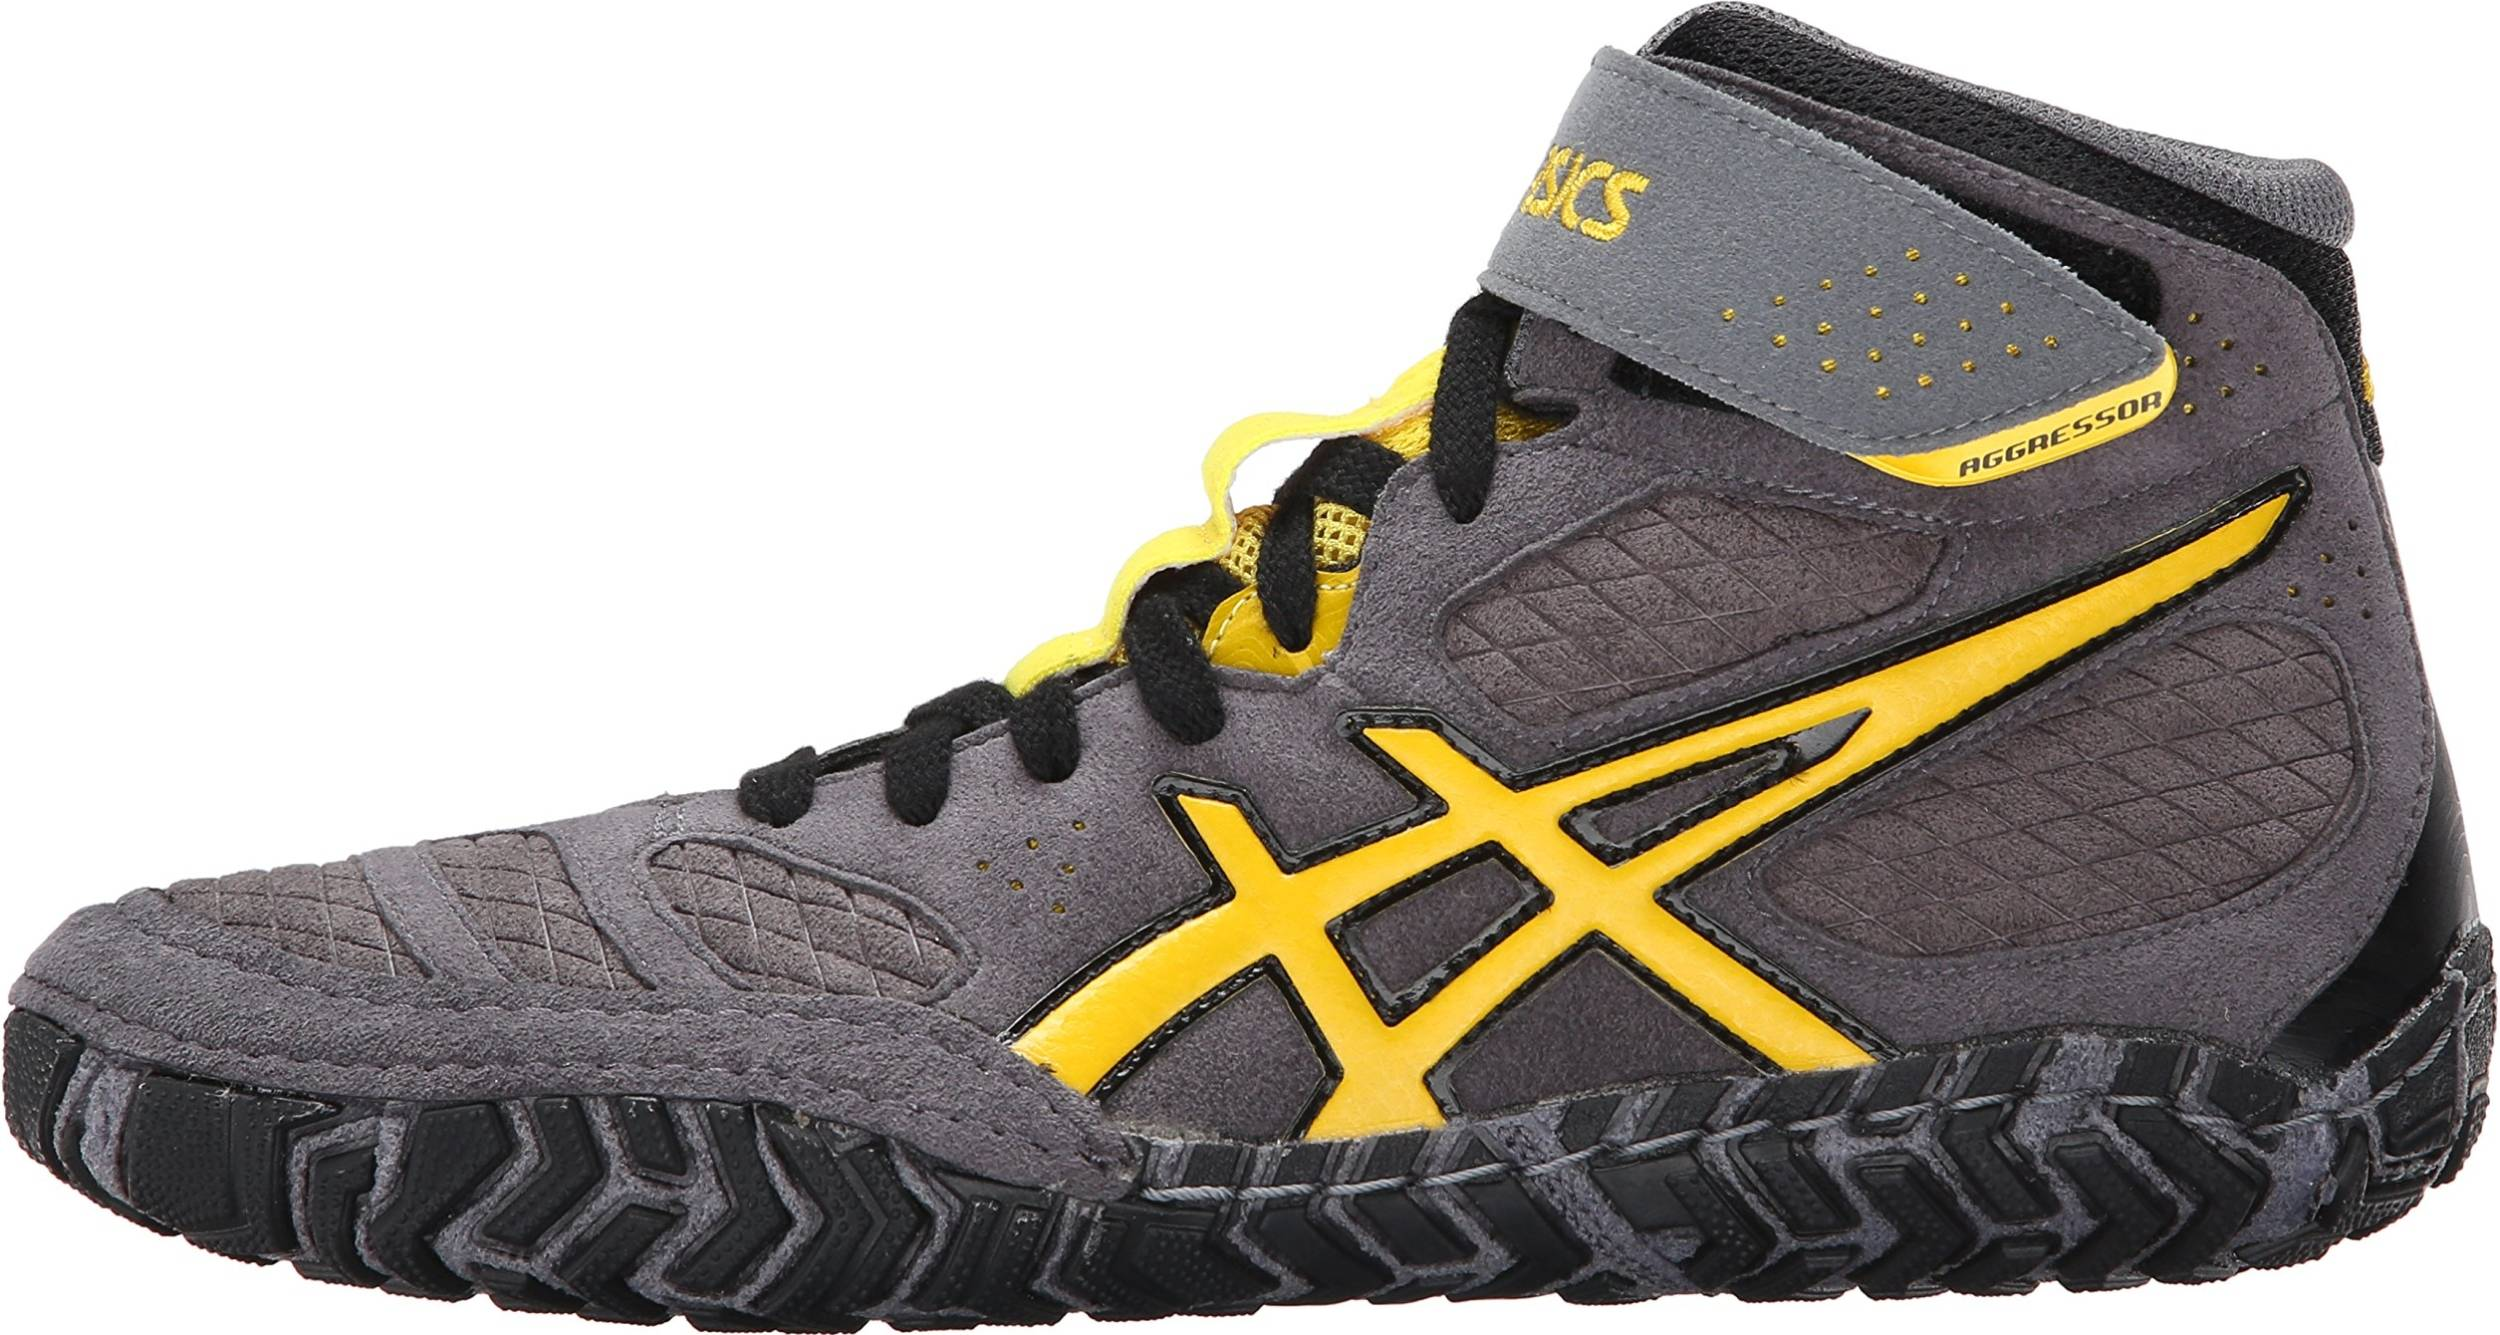 Only $80 + Review of Asics Aggressor 2